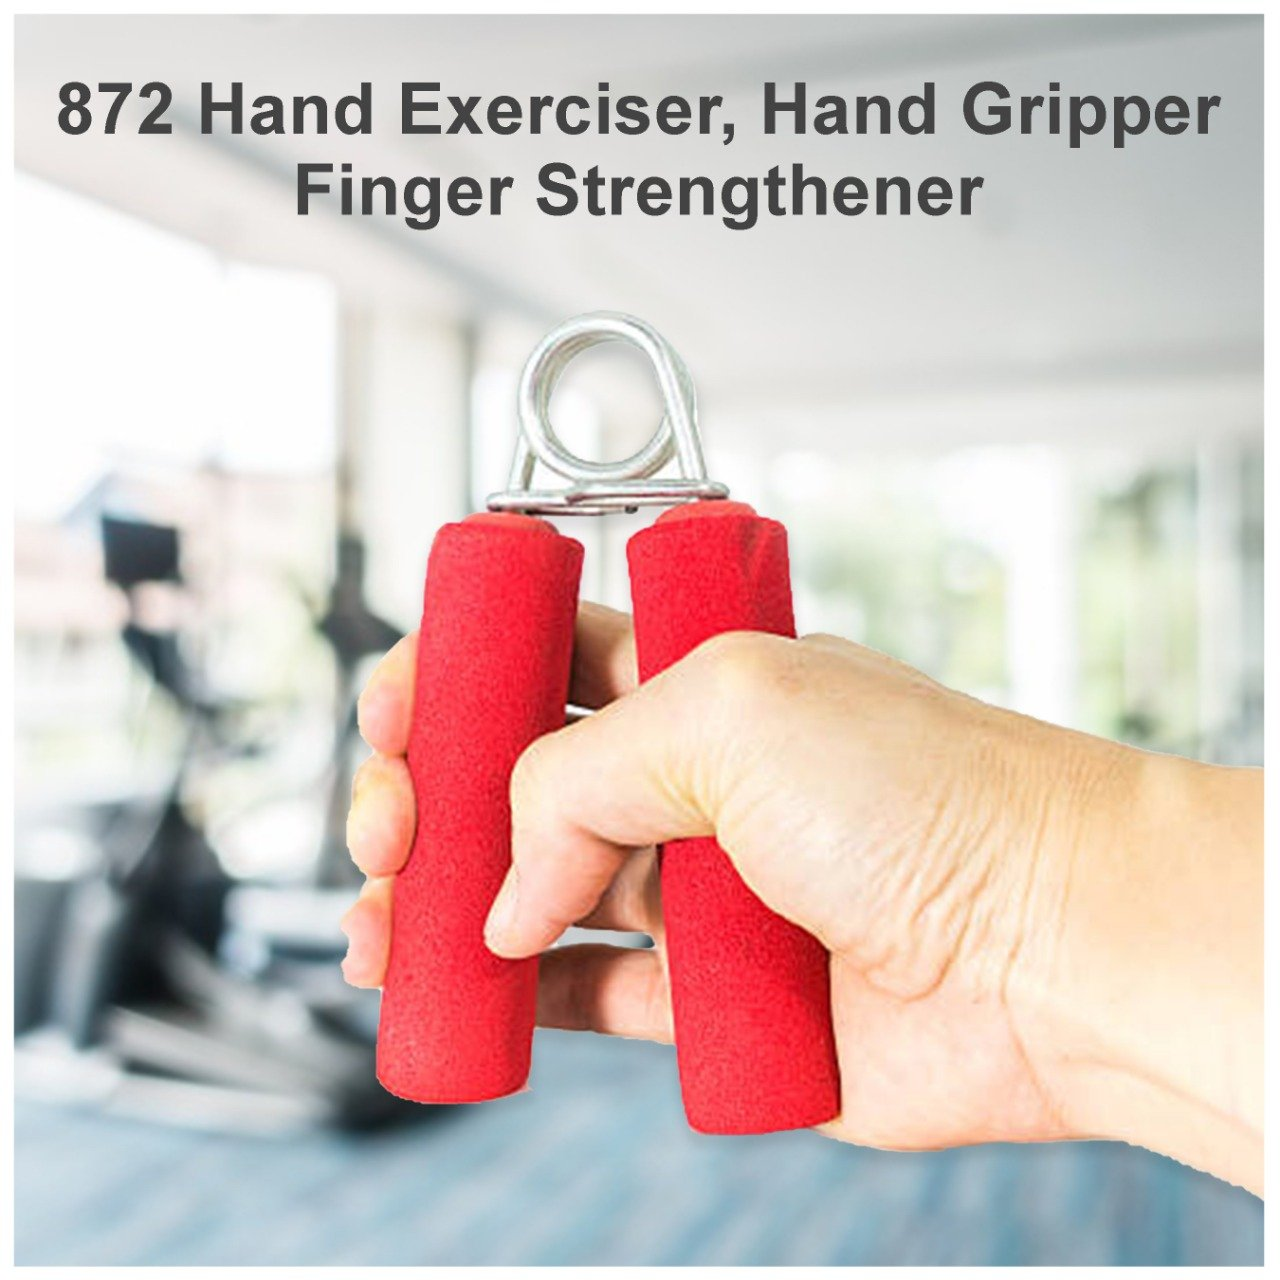 872 Hand Exerciser, Hand Gripper/Finger Strengthener